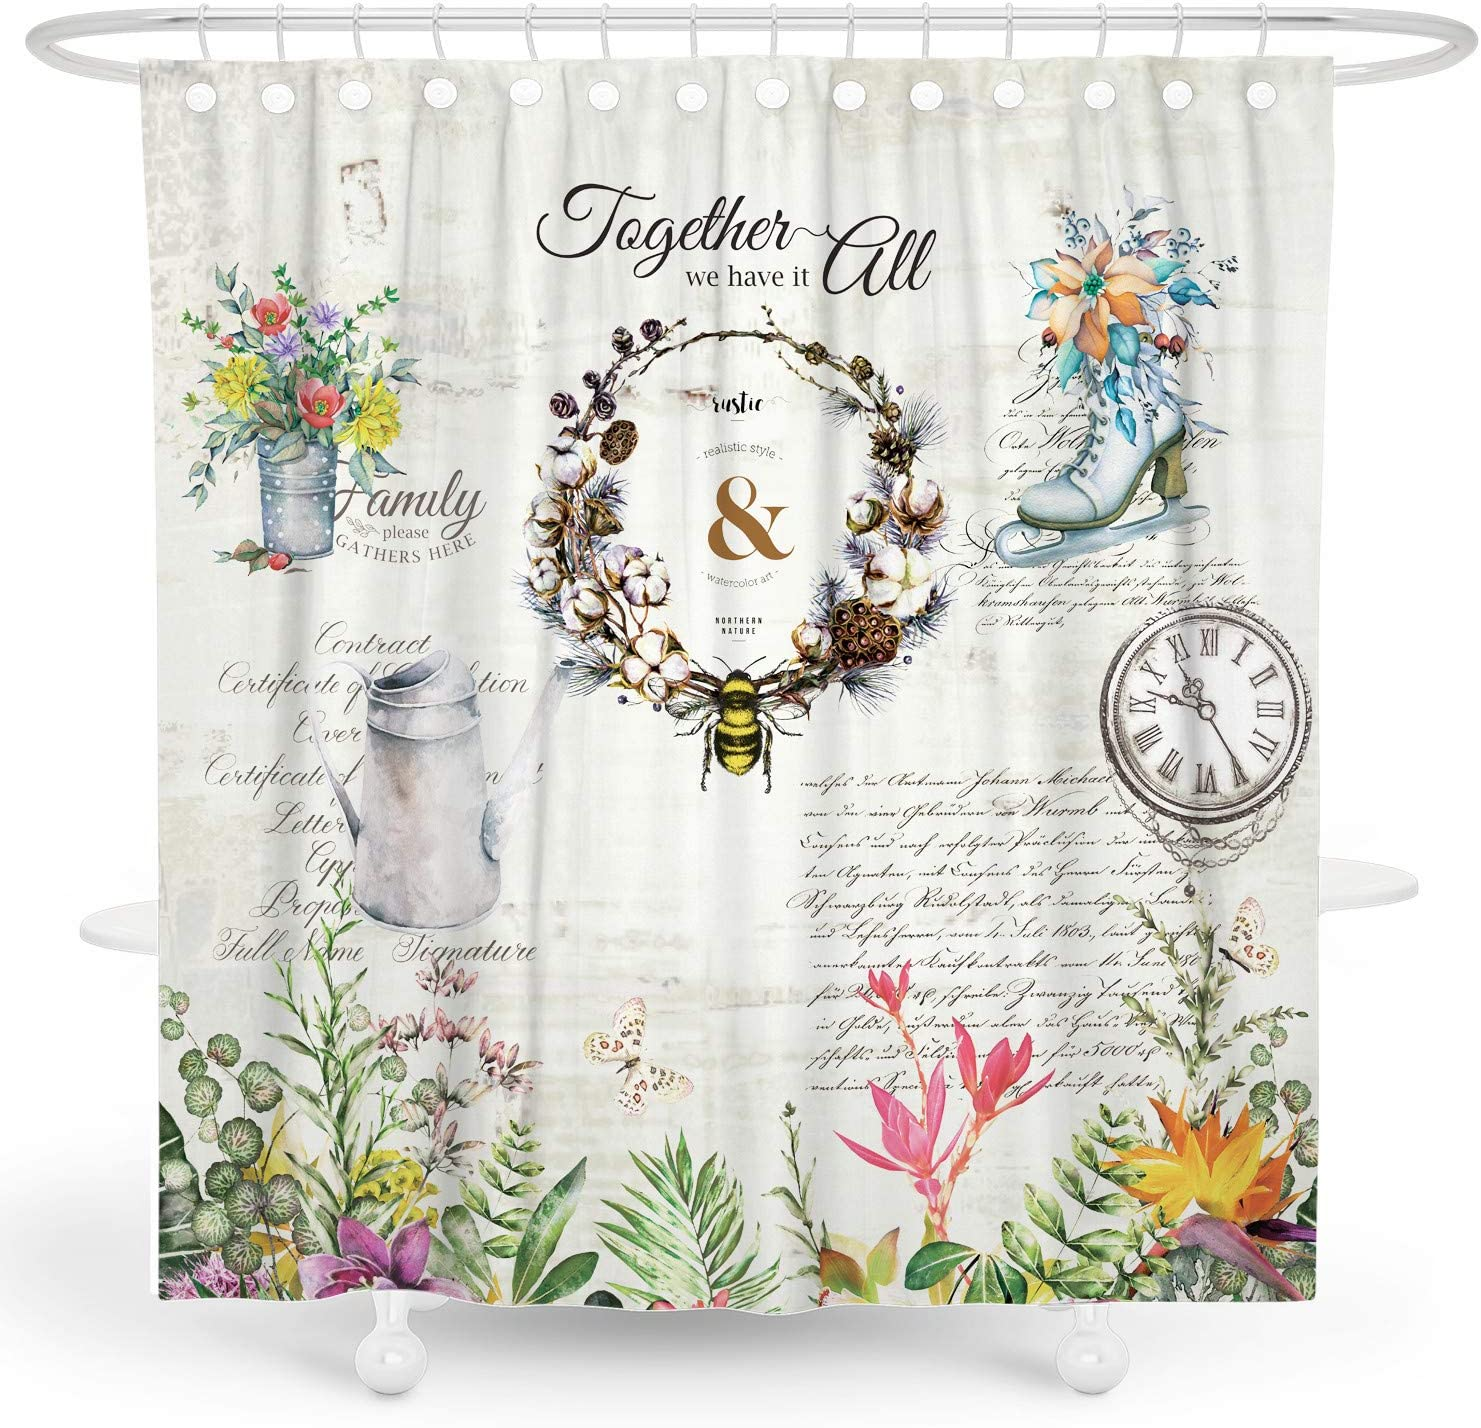 DESIHOM Country Shower Curtain Farmhouse Shower Curtain Rustic Shower Curtain Vintage Floral Shower Curtain Farmhouse Style Primitive Shower Curtain Quote Polyester Waterproof Shower Curtain 72x72